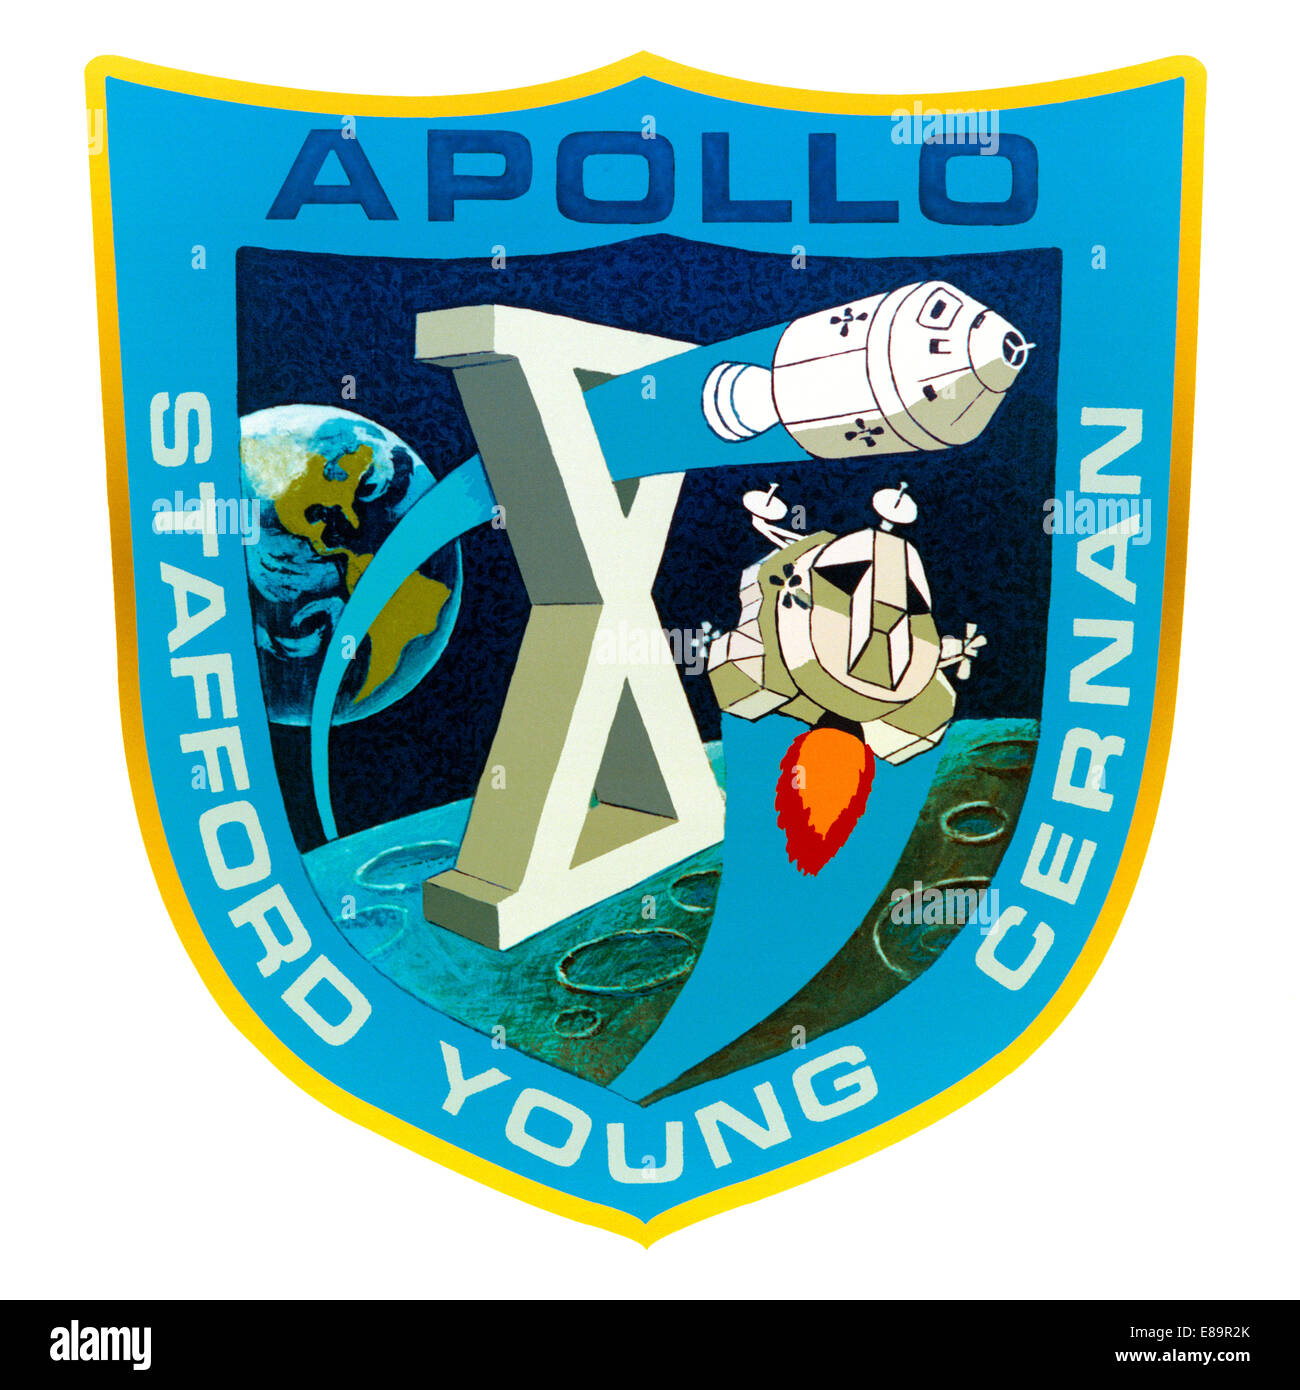 Apollo 10 mission patch - Stock Image